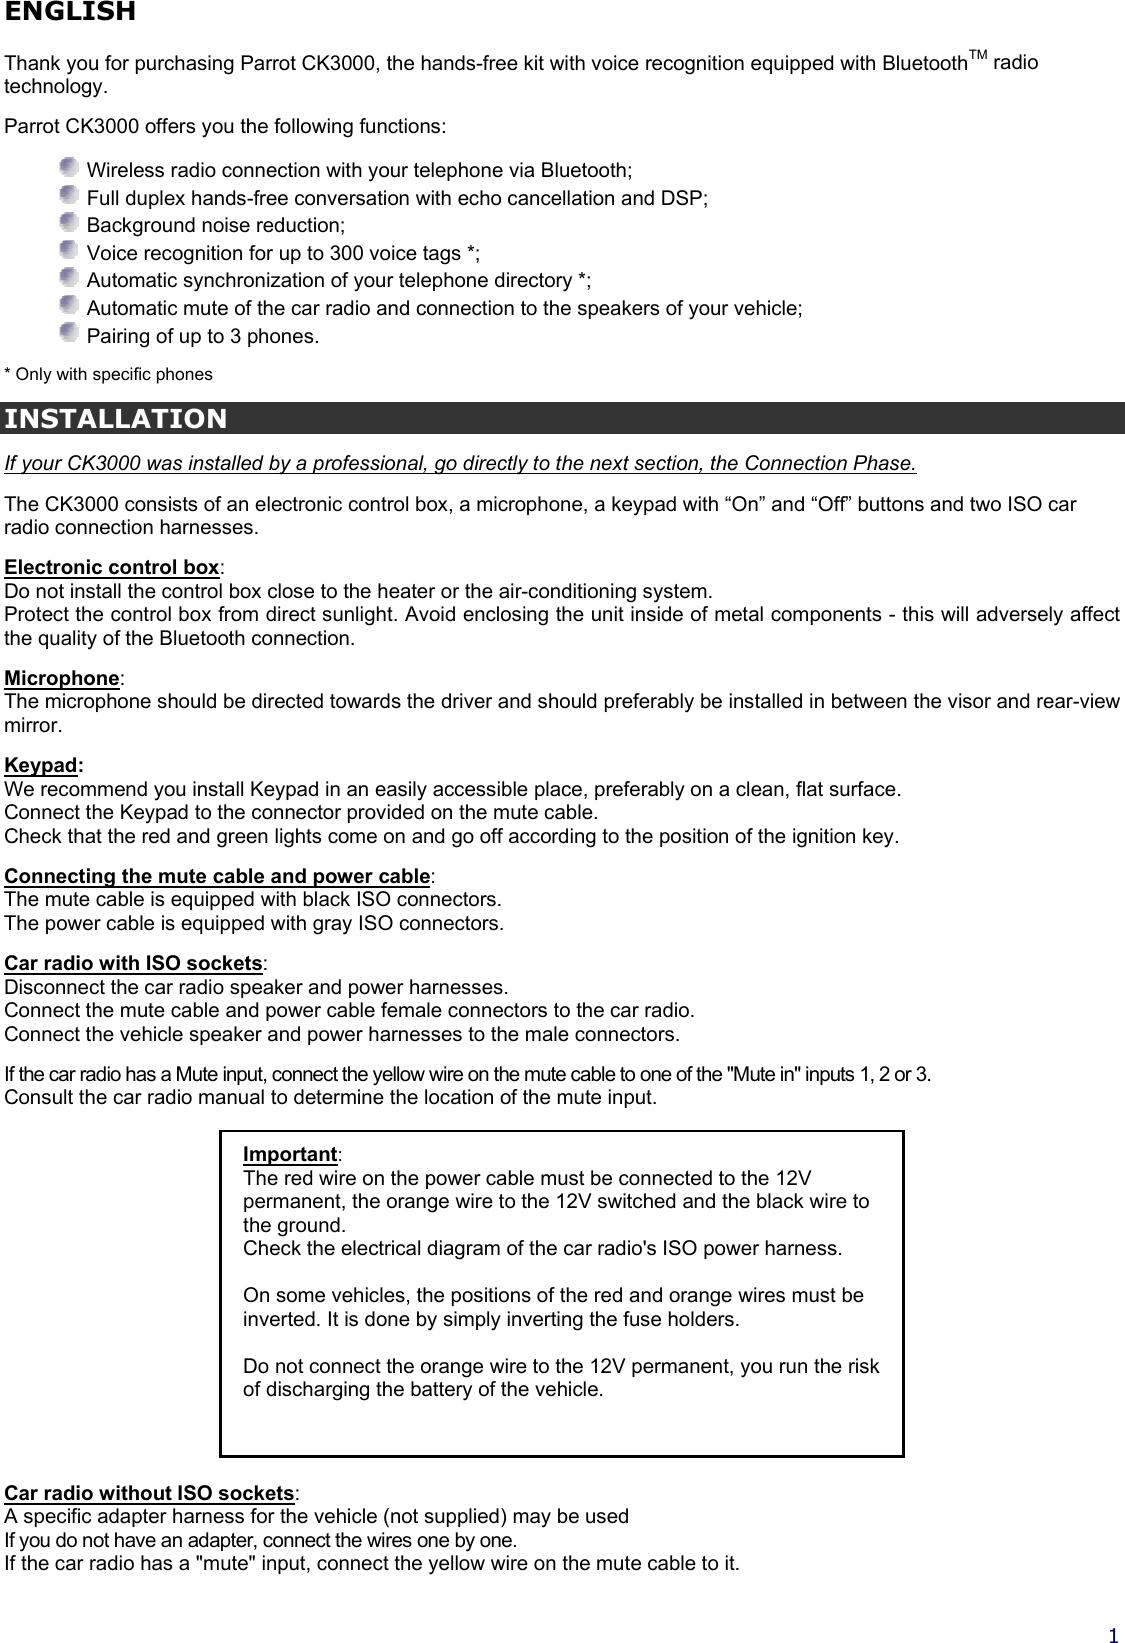 Parrot Ck 3000 Users Manual Notice English 2003 11 18 Male Plug Wiring Diagram